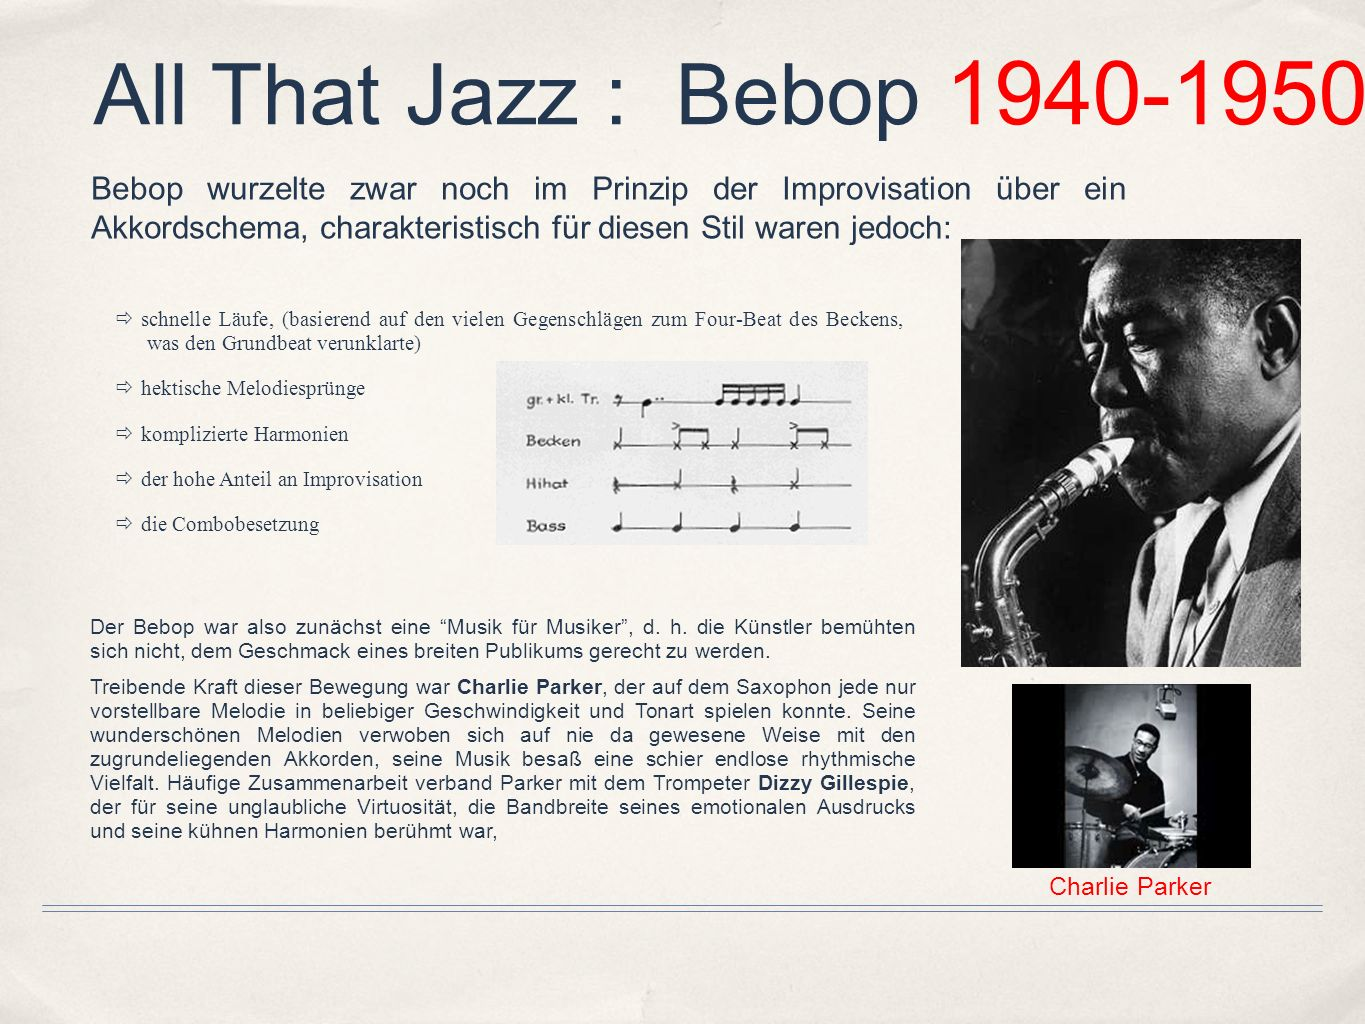 All That Jazz : Bebop 1940-1950